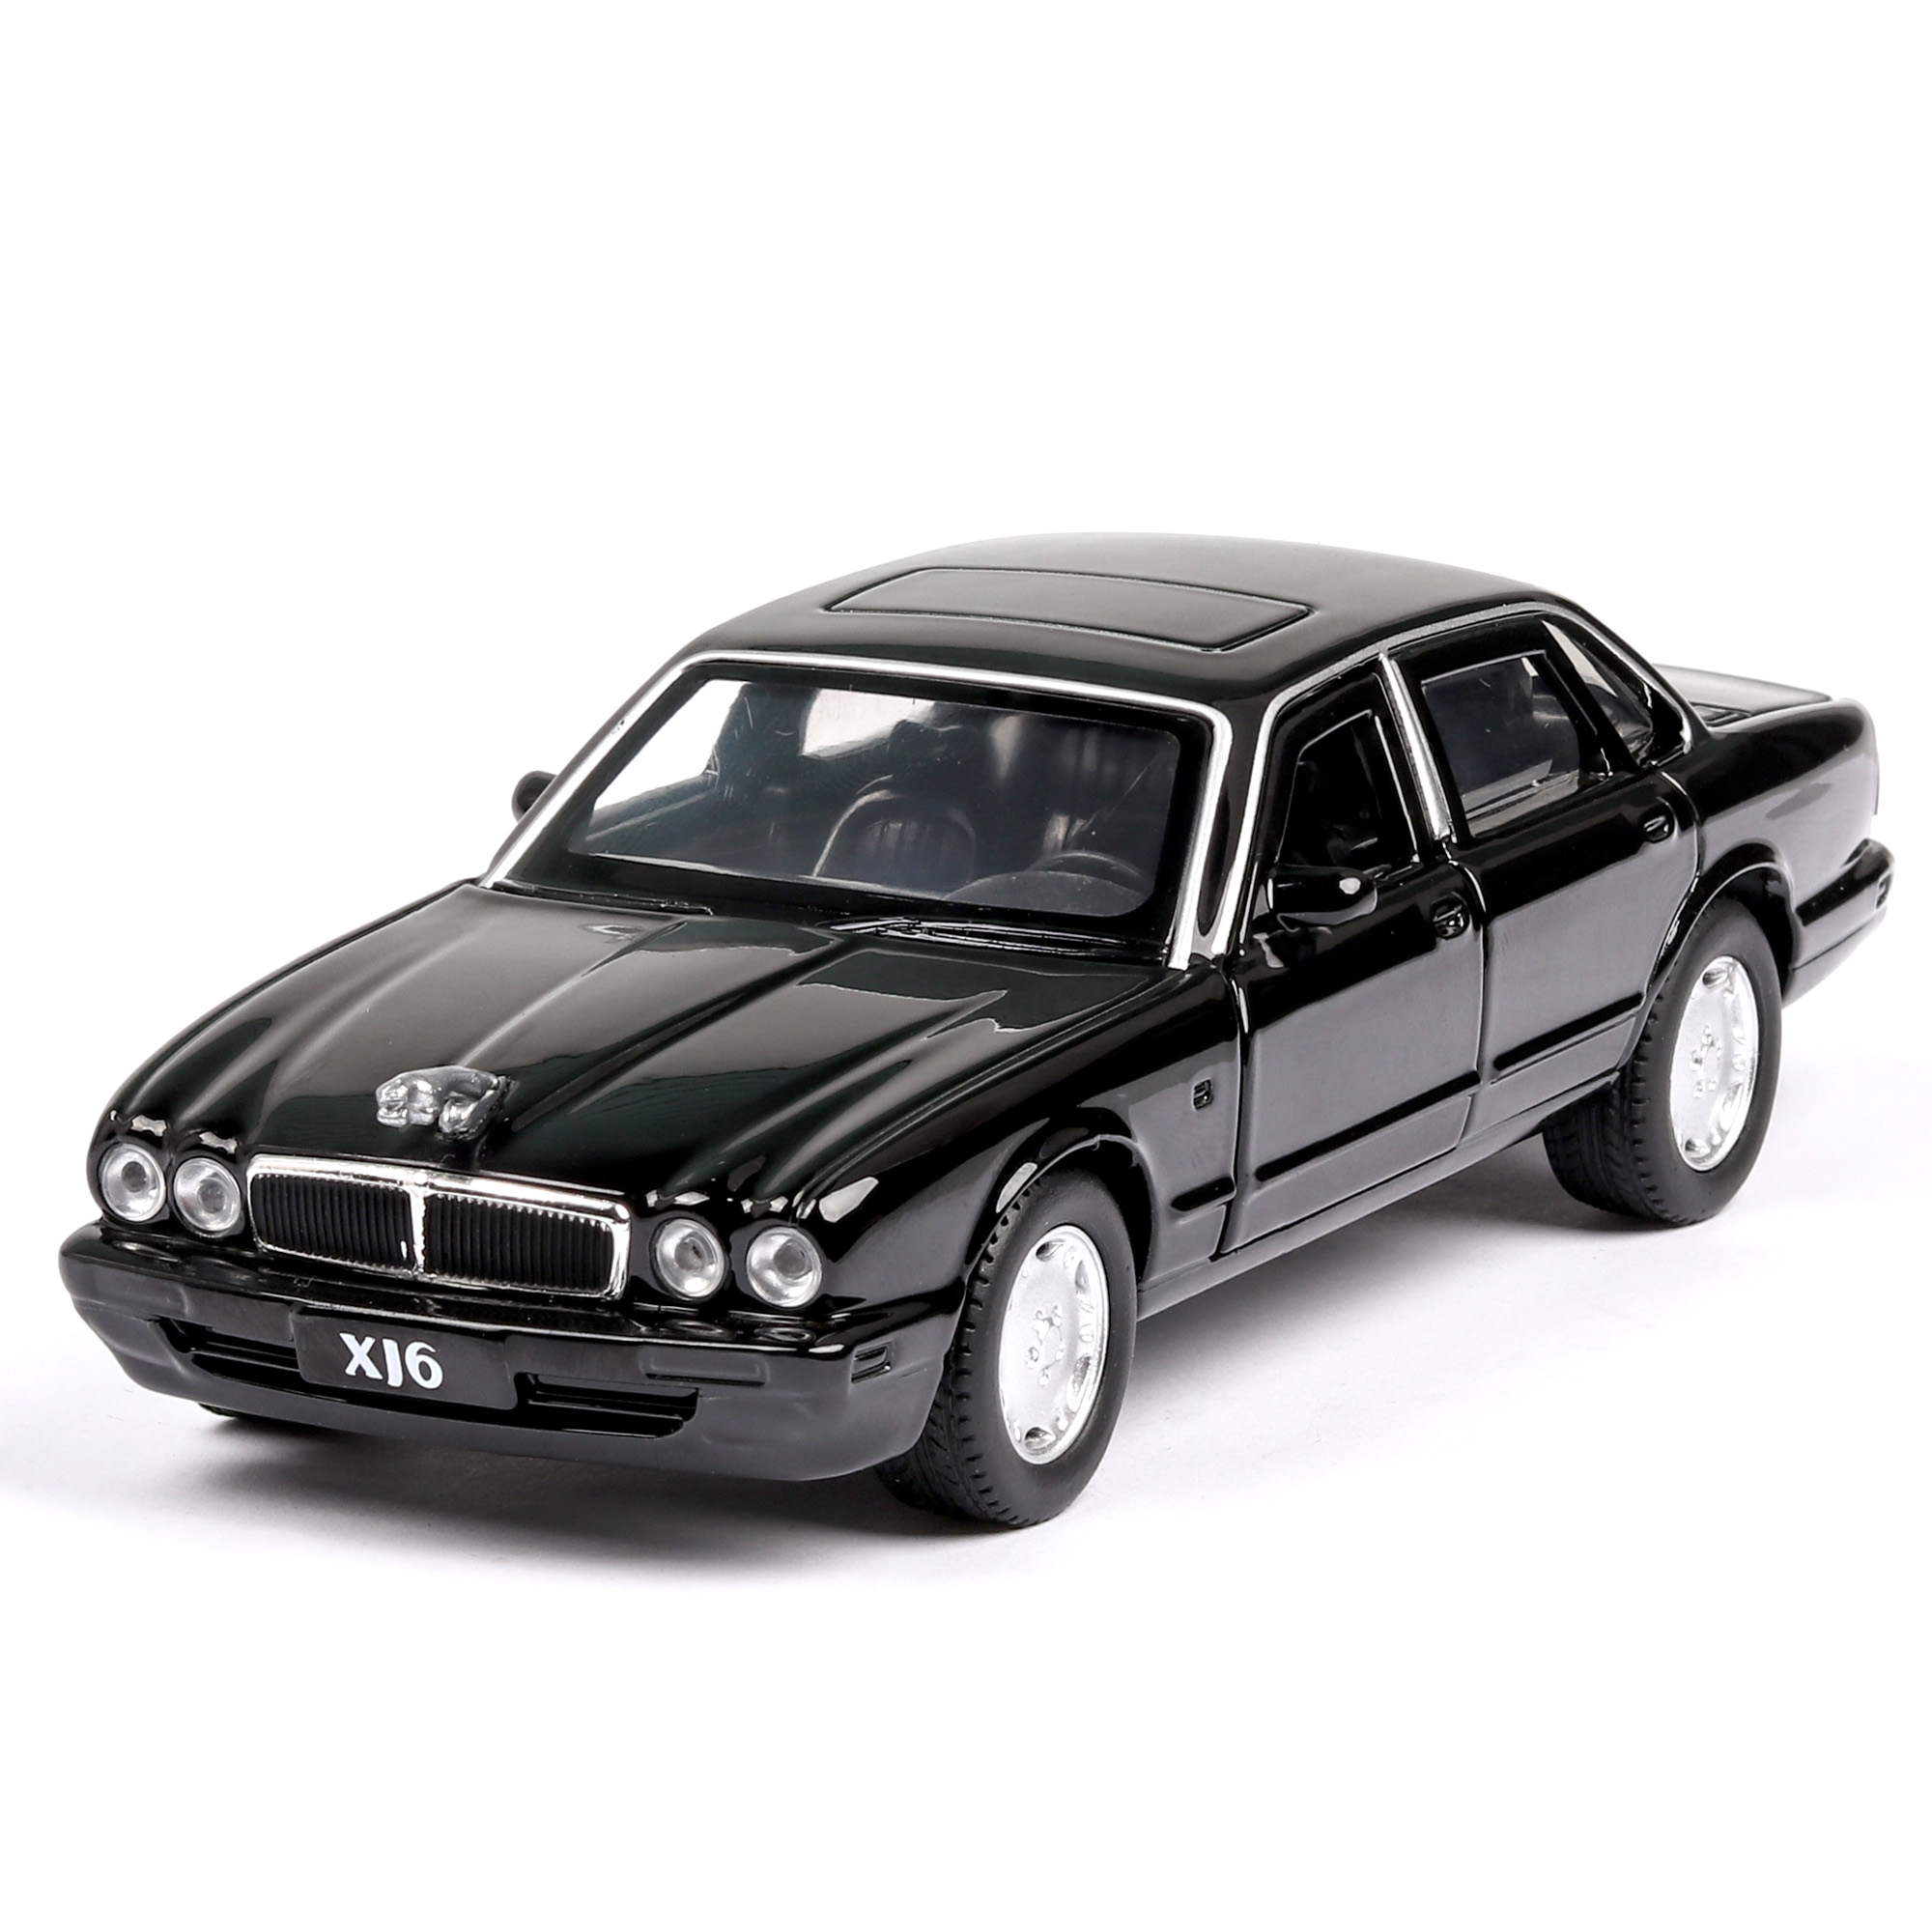 1:32 JAGUAR XJ6 Alloy Sports Car Model Diecast Super Racing Lifting Tail Hot Wheel For Children Thomas Car Toys For Boys Glider